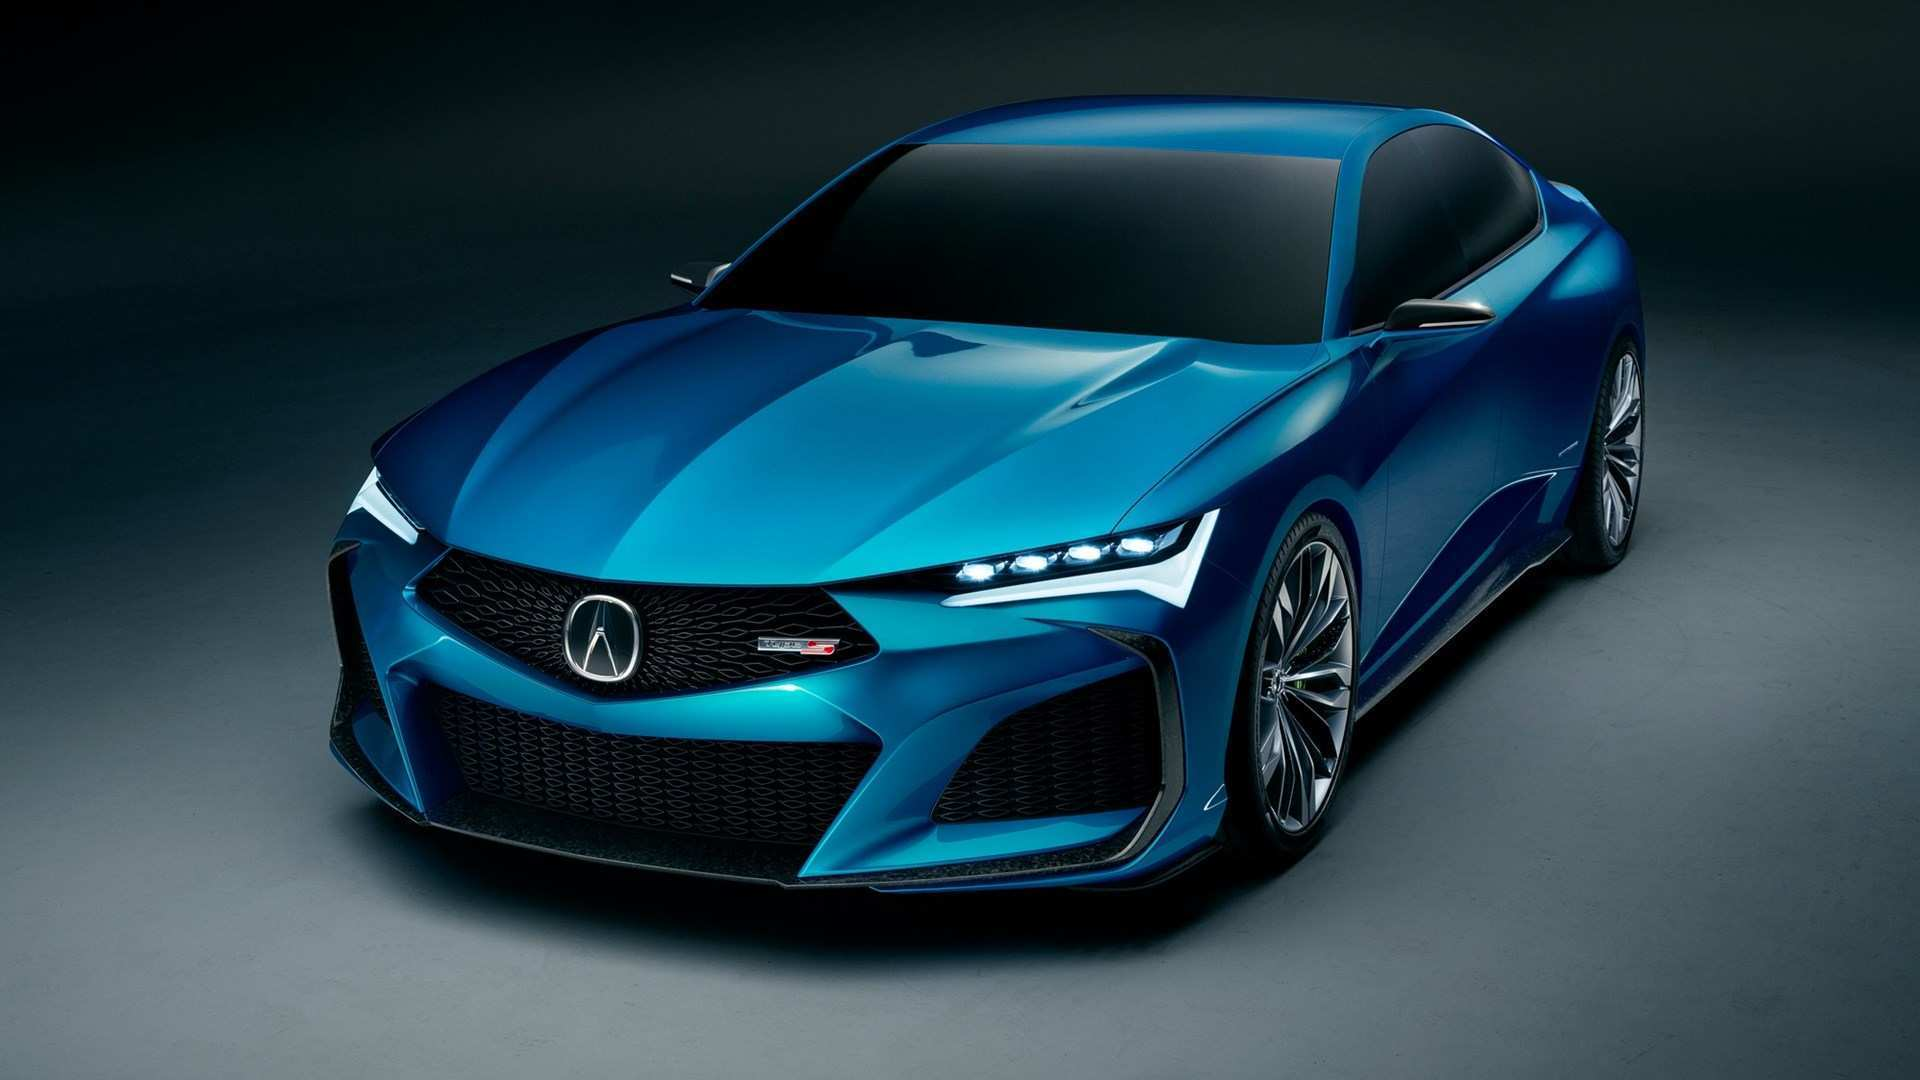 48 New Acura S Type 2020 Exterior And Interior